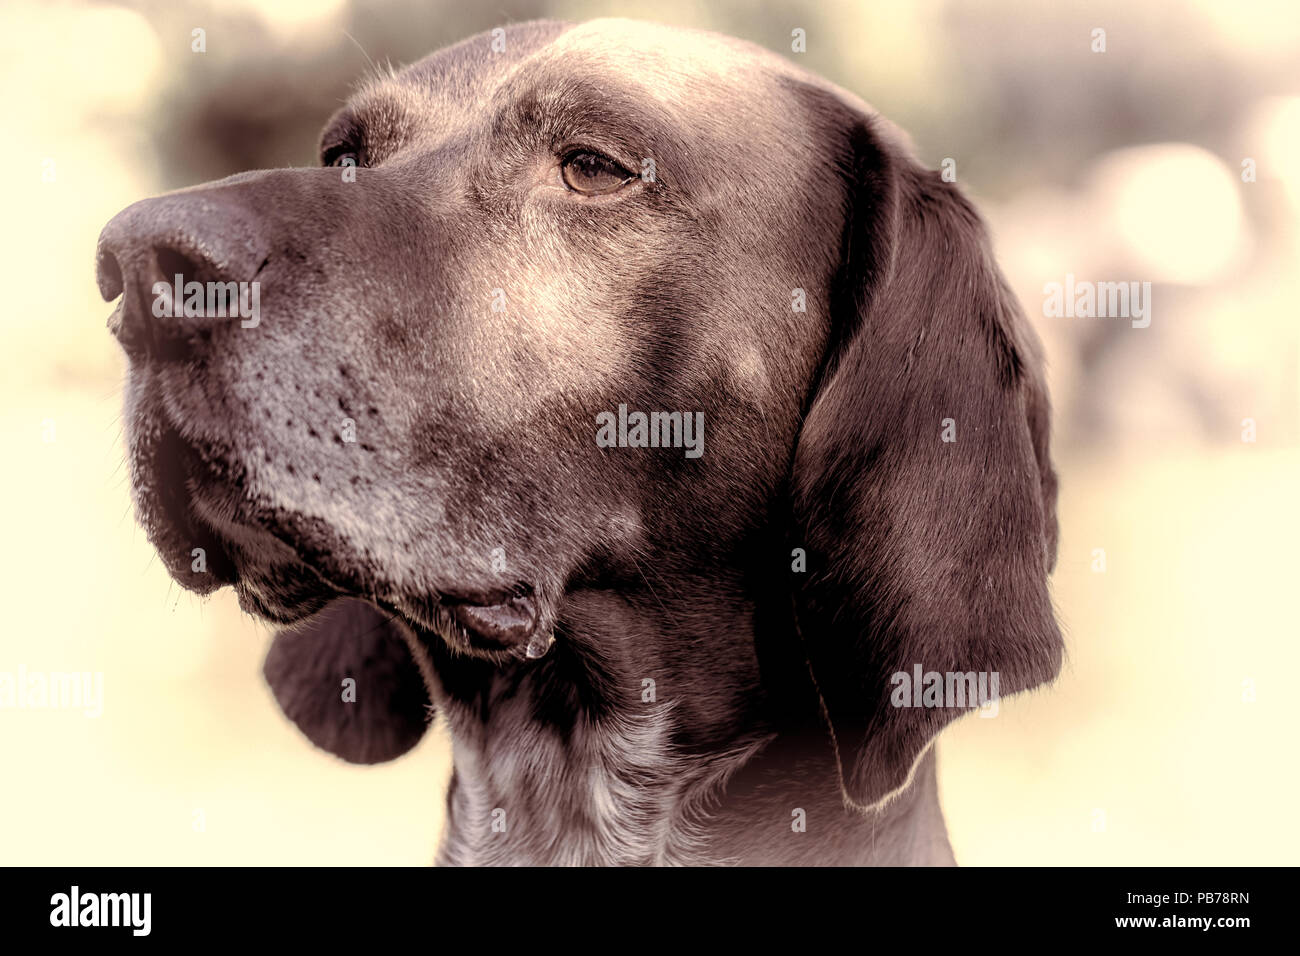 German short-haired pointer dog. Close-up distinguished pedigree pet portrait. Old working dog head in close-up with natural vignette and vintage tone - Stock Image